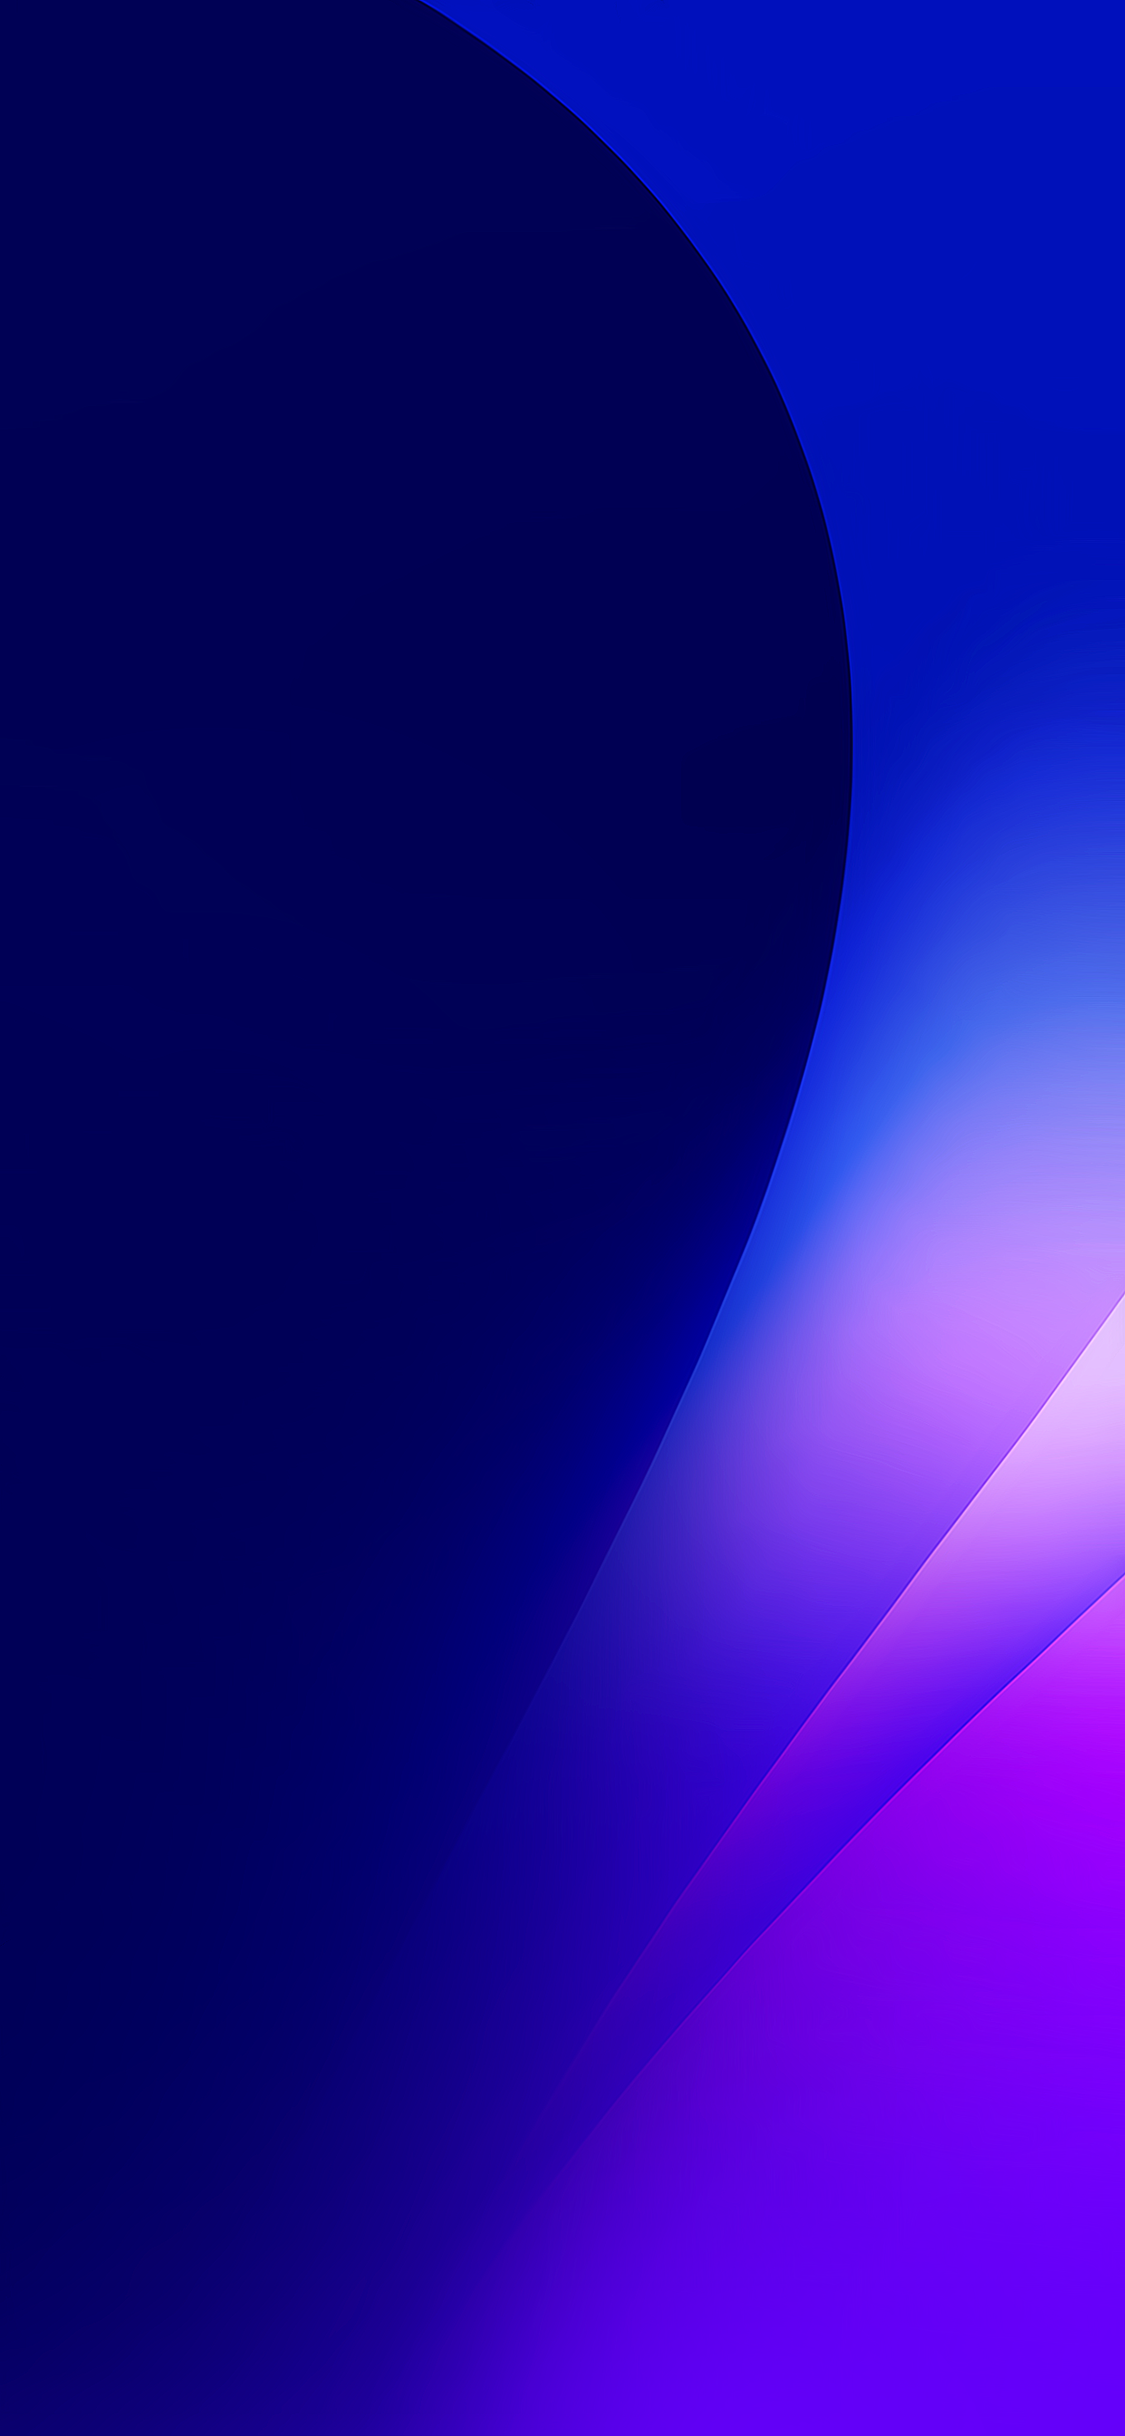 Pin By Daniel Ivan On Iphone In 2019 Retina Wallpaper Graphic